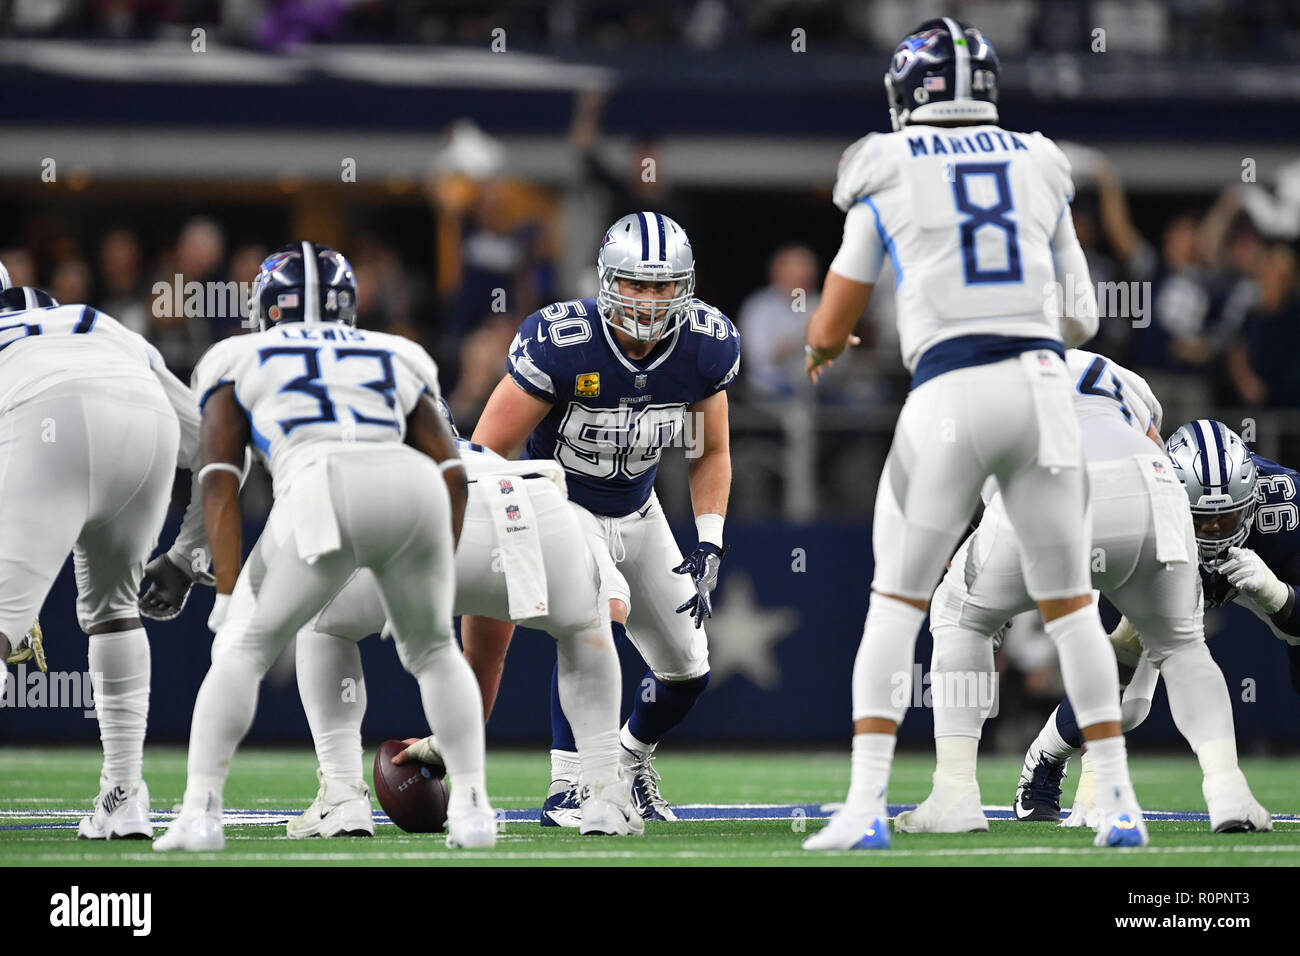 0dcab7f90 Dallas Cowboys linebacker Sean Lee (50) during the NFL football game  between the Tennessee Titans and the Dallas Cowboys at AT T Stadium in  Arlington